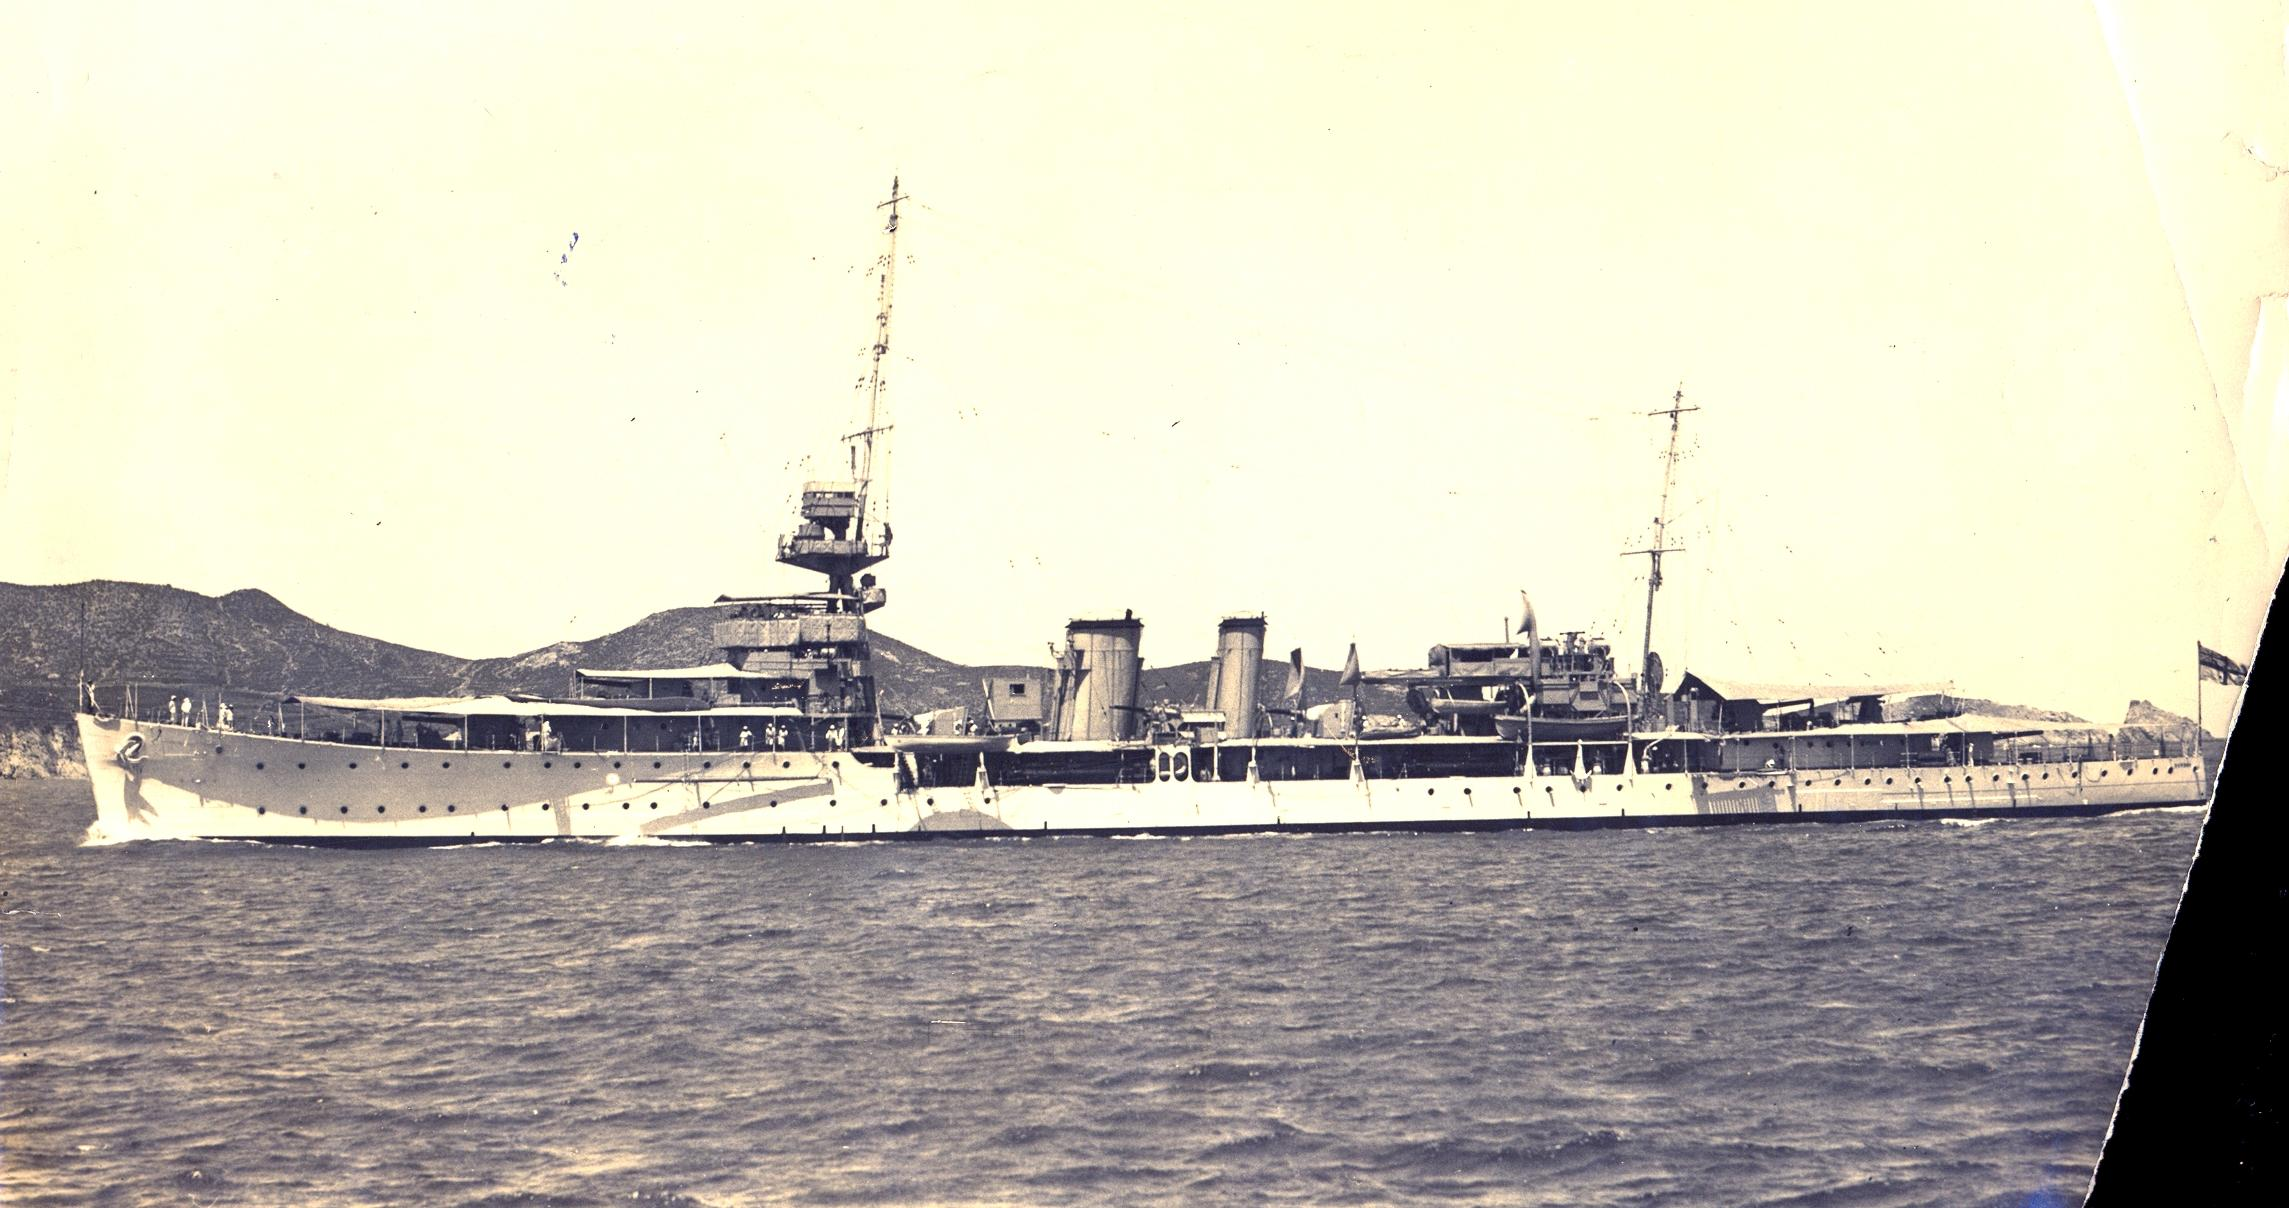 HMS Durban - date and location not unknown